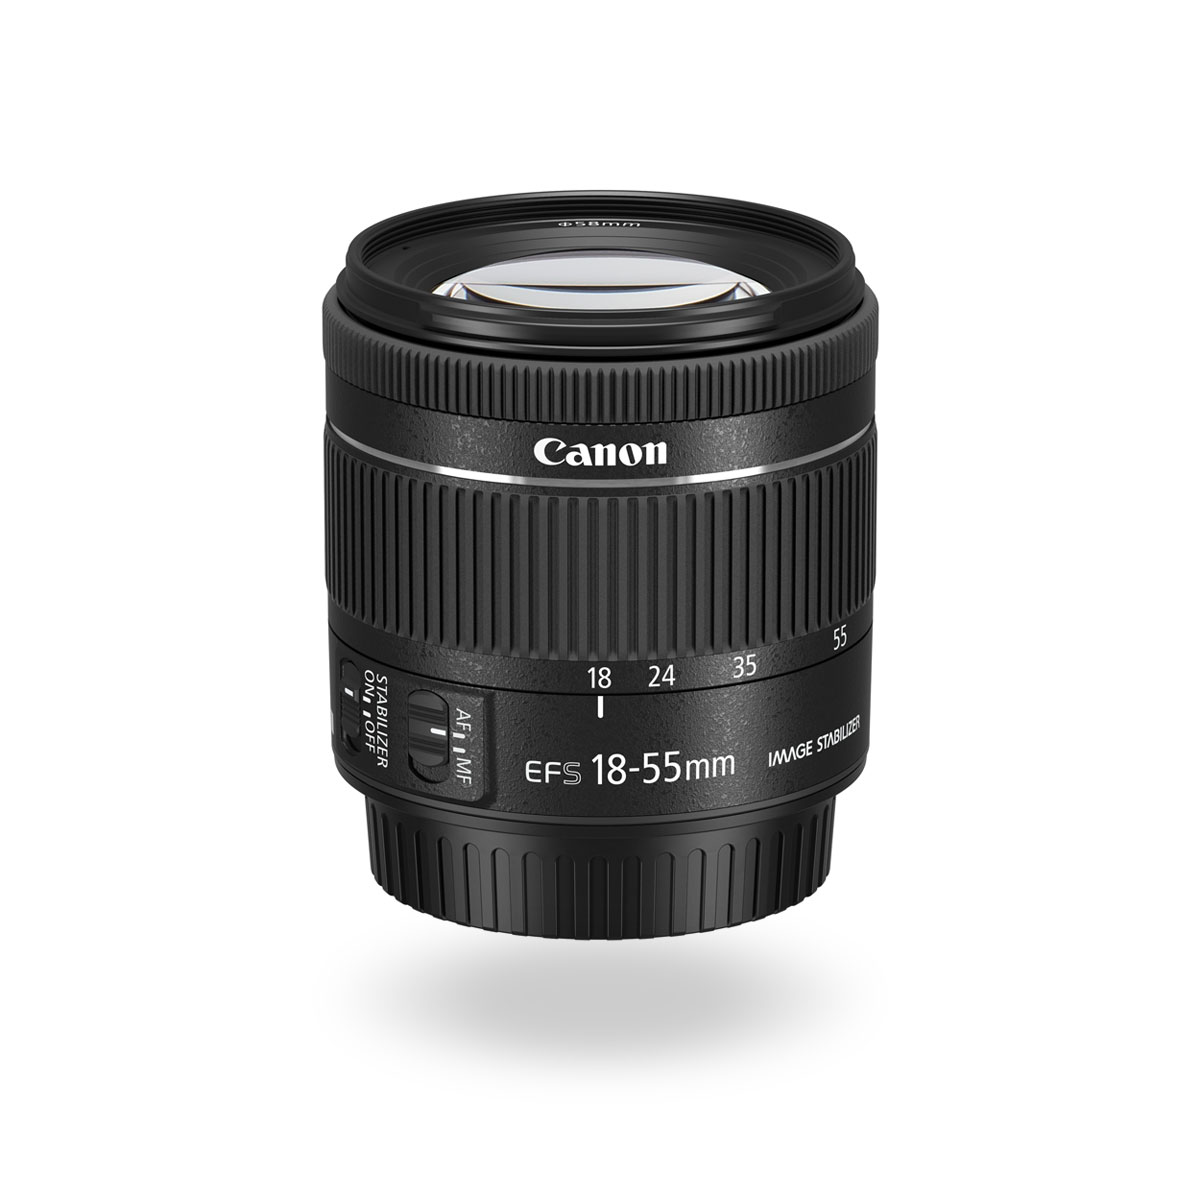 EF-S 18-55mm f/4-5.6 IS STM lens